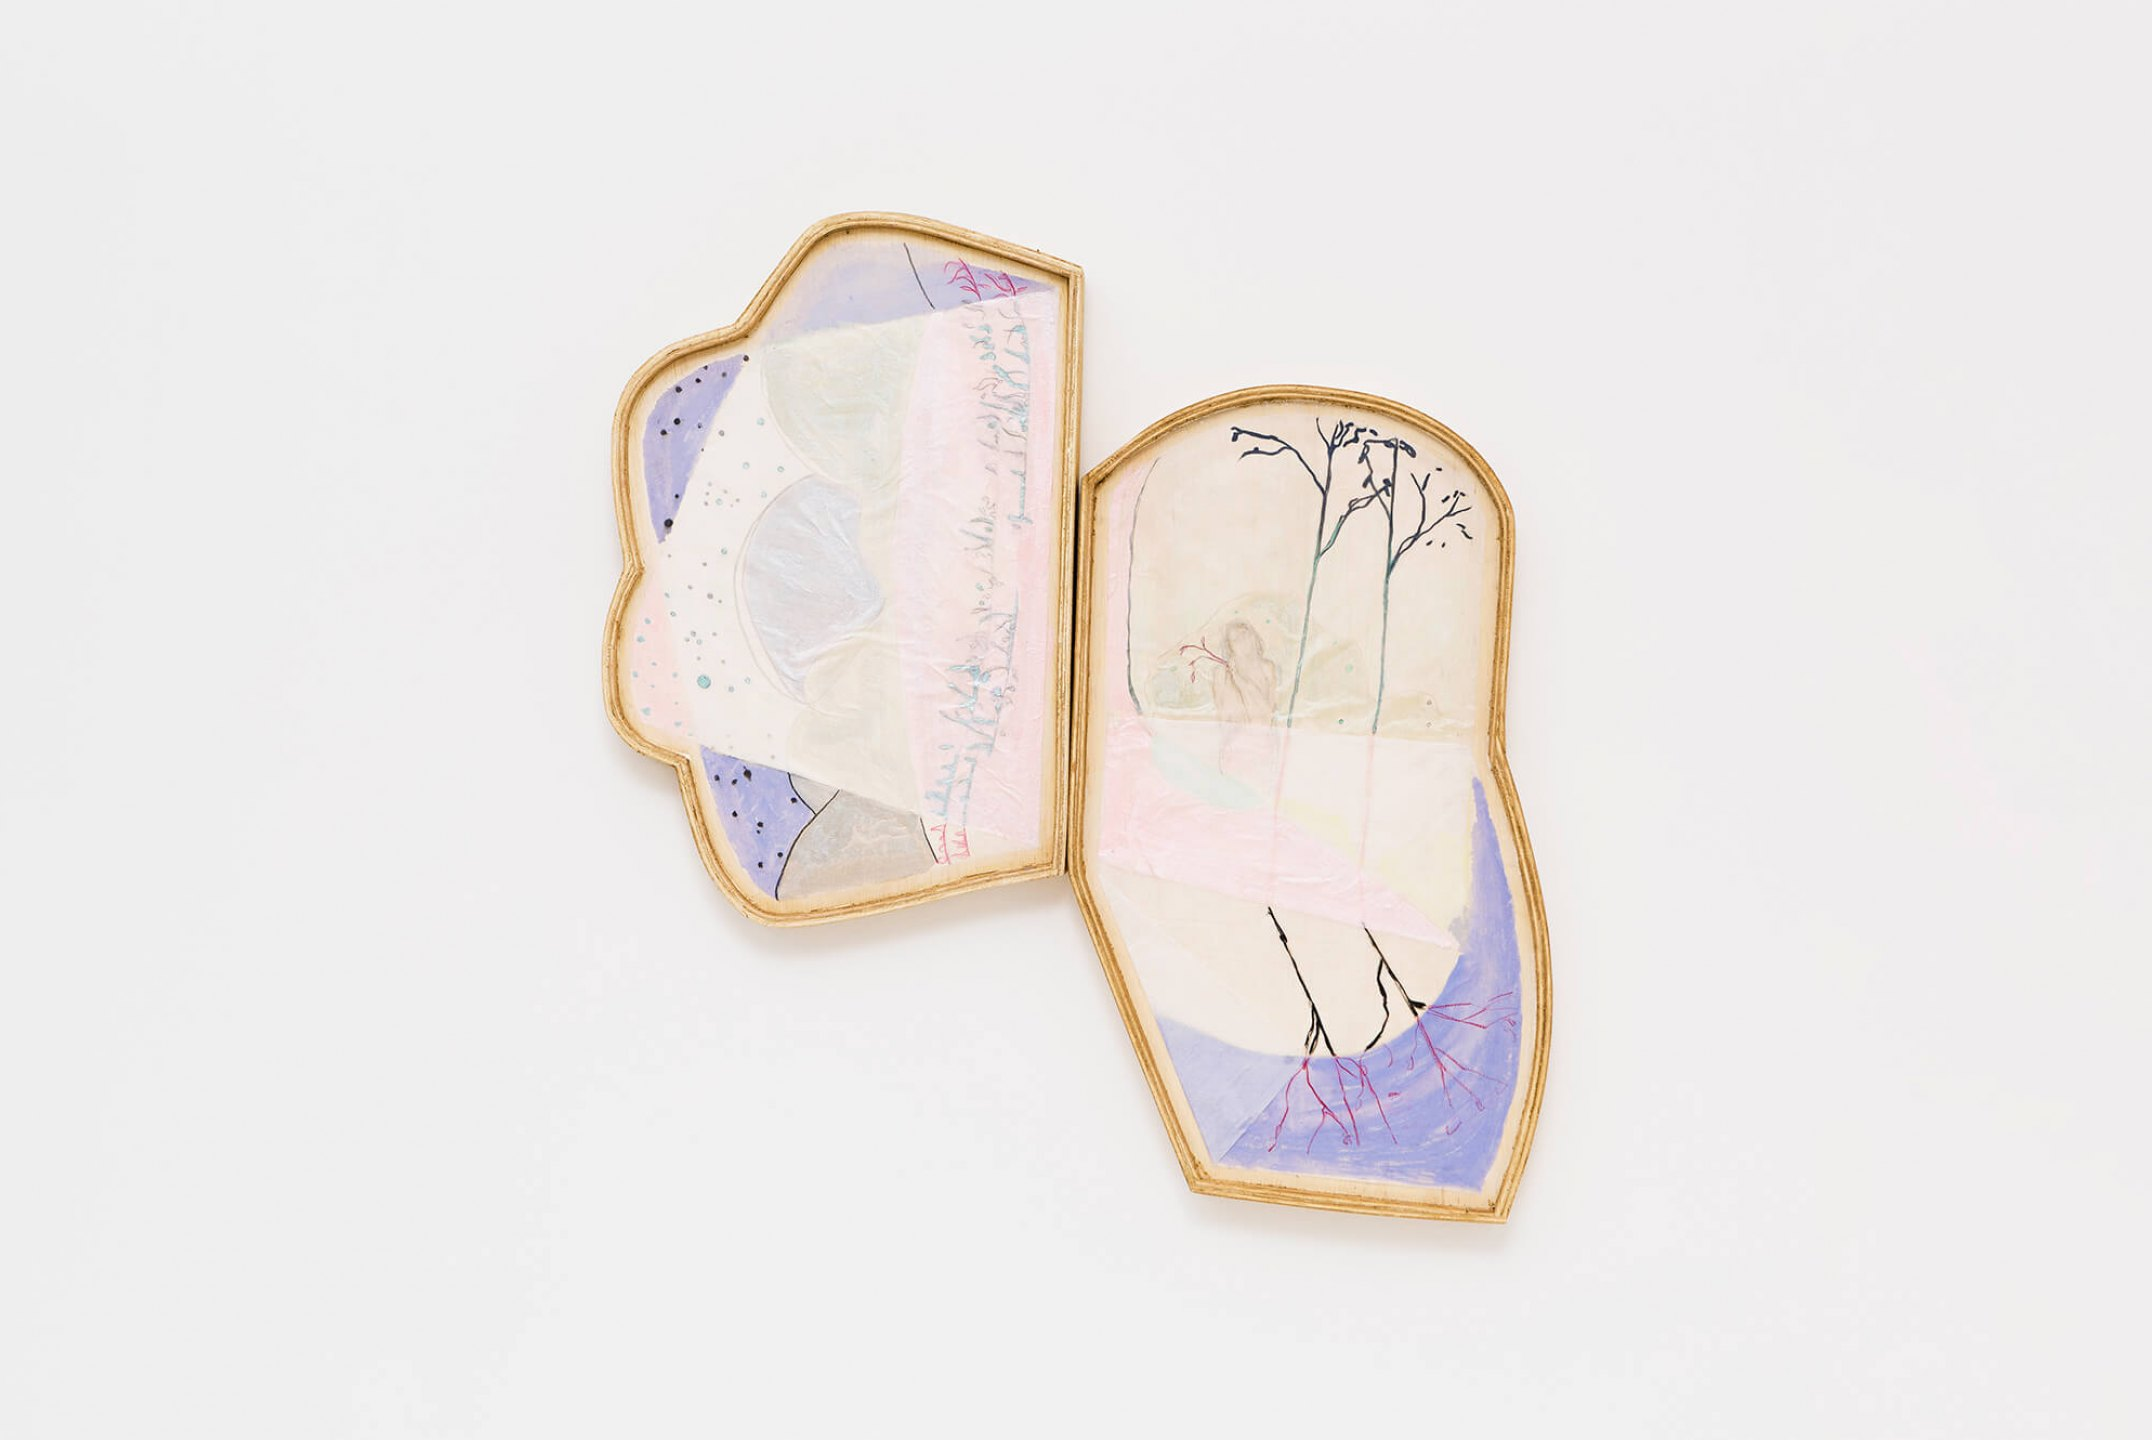 Marina Perez Simão,<em>Untitled,</em>2015, pencil, acrylic, watercolor, iridescent pigment on korean paper folded and assembled on wood, 17 × 30 × 2 cm - Mendes Wood DM